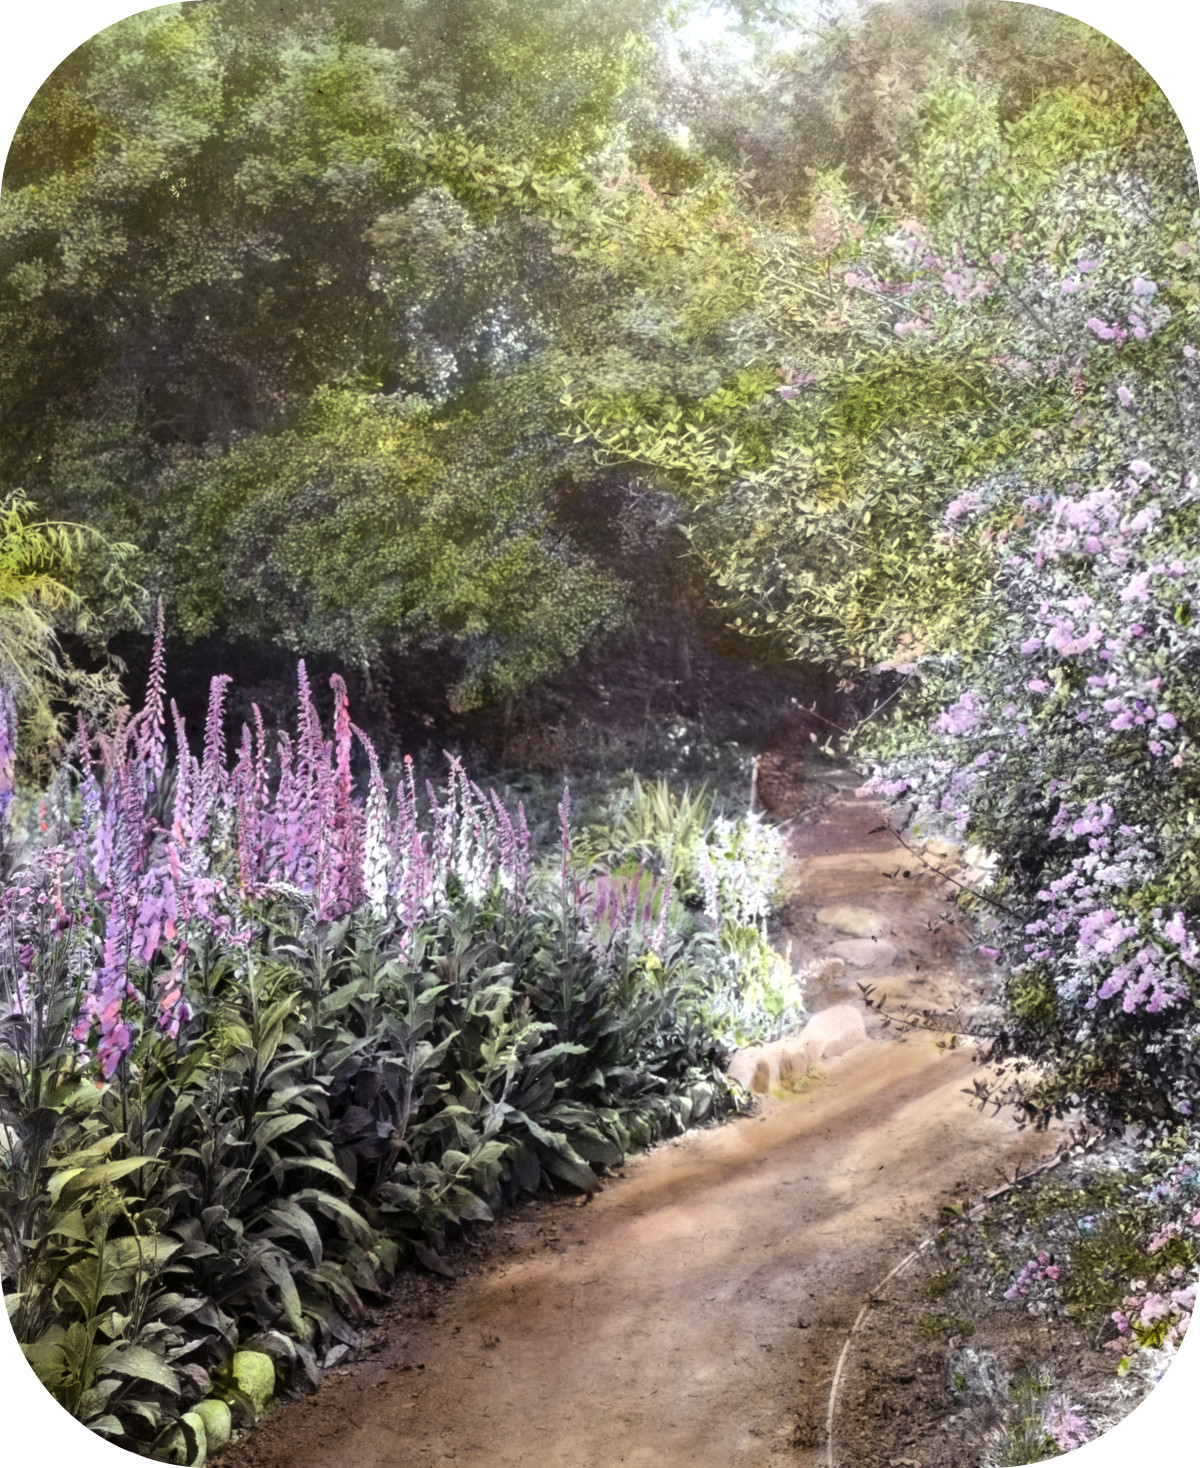 Michael Cochrane Armour house, 962 Linda Vista Avenue, Pasadena, California. Native plant garden pathway